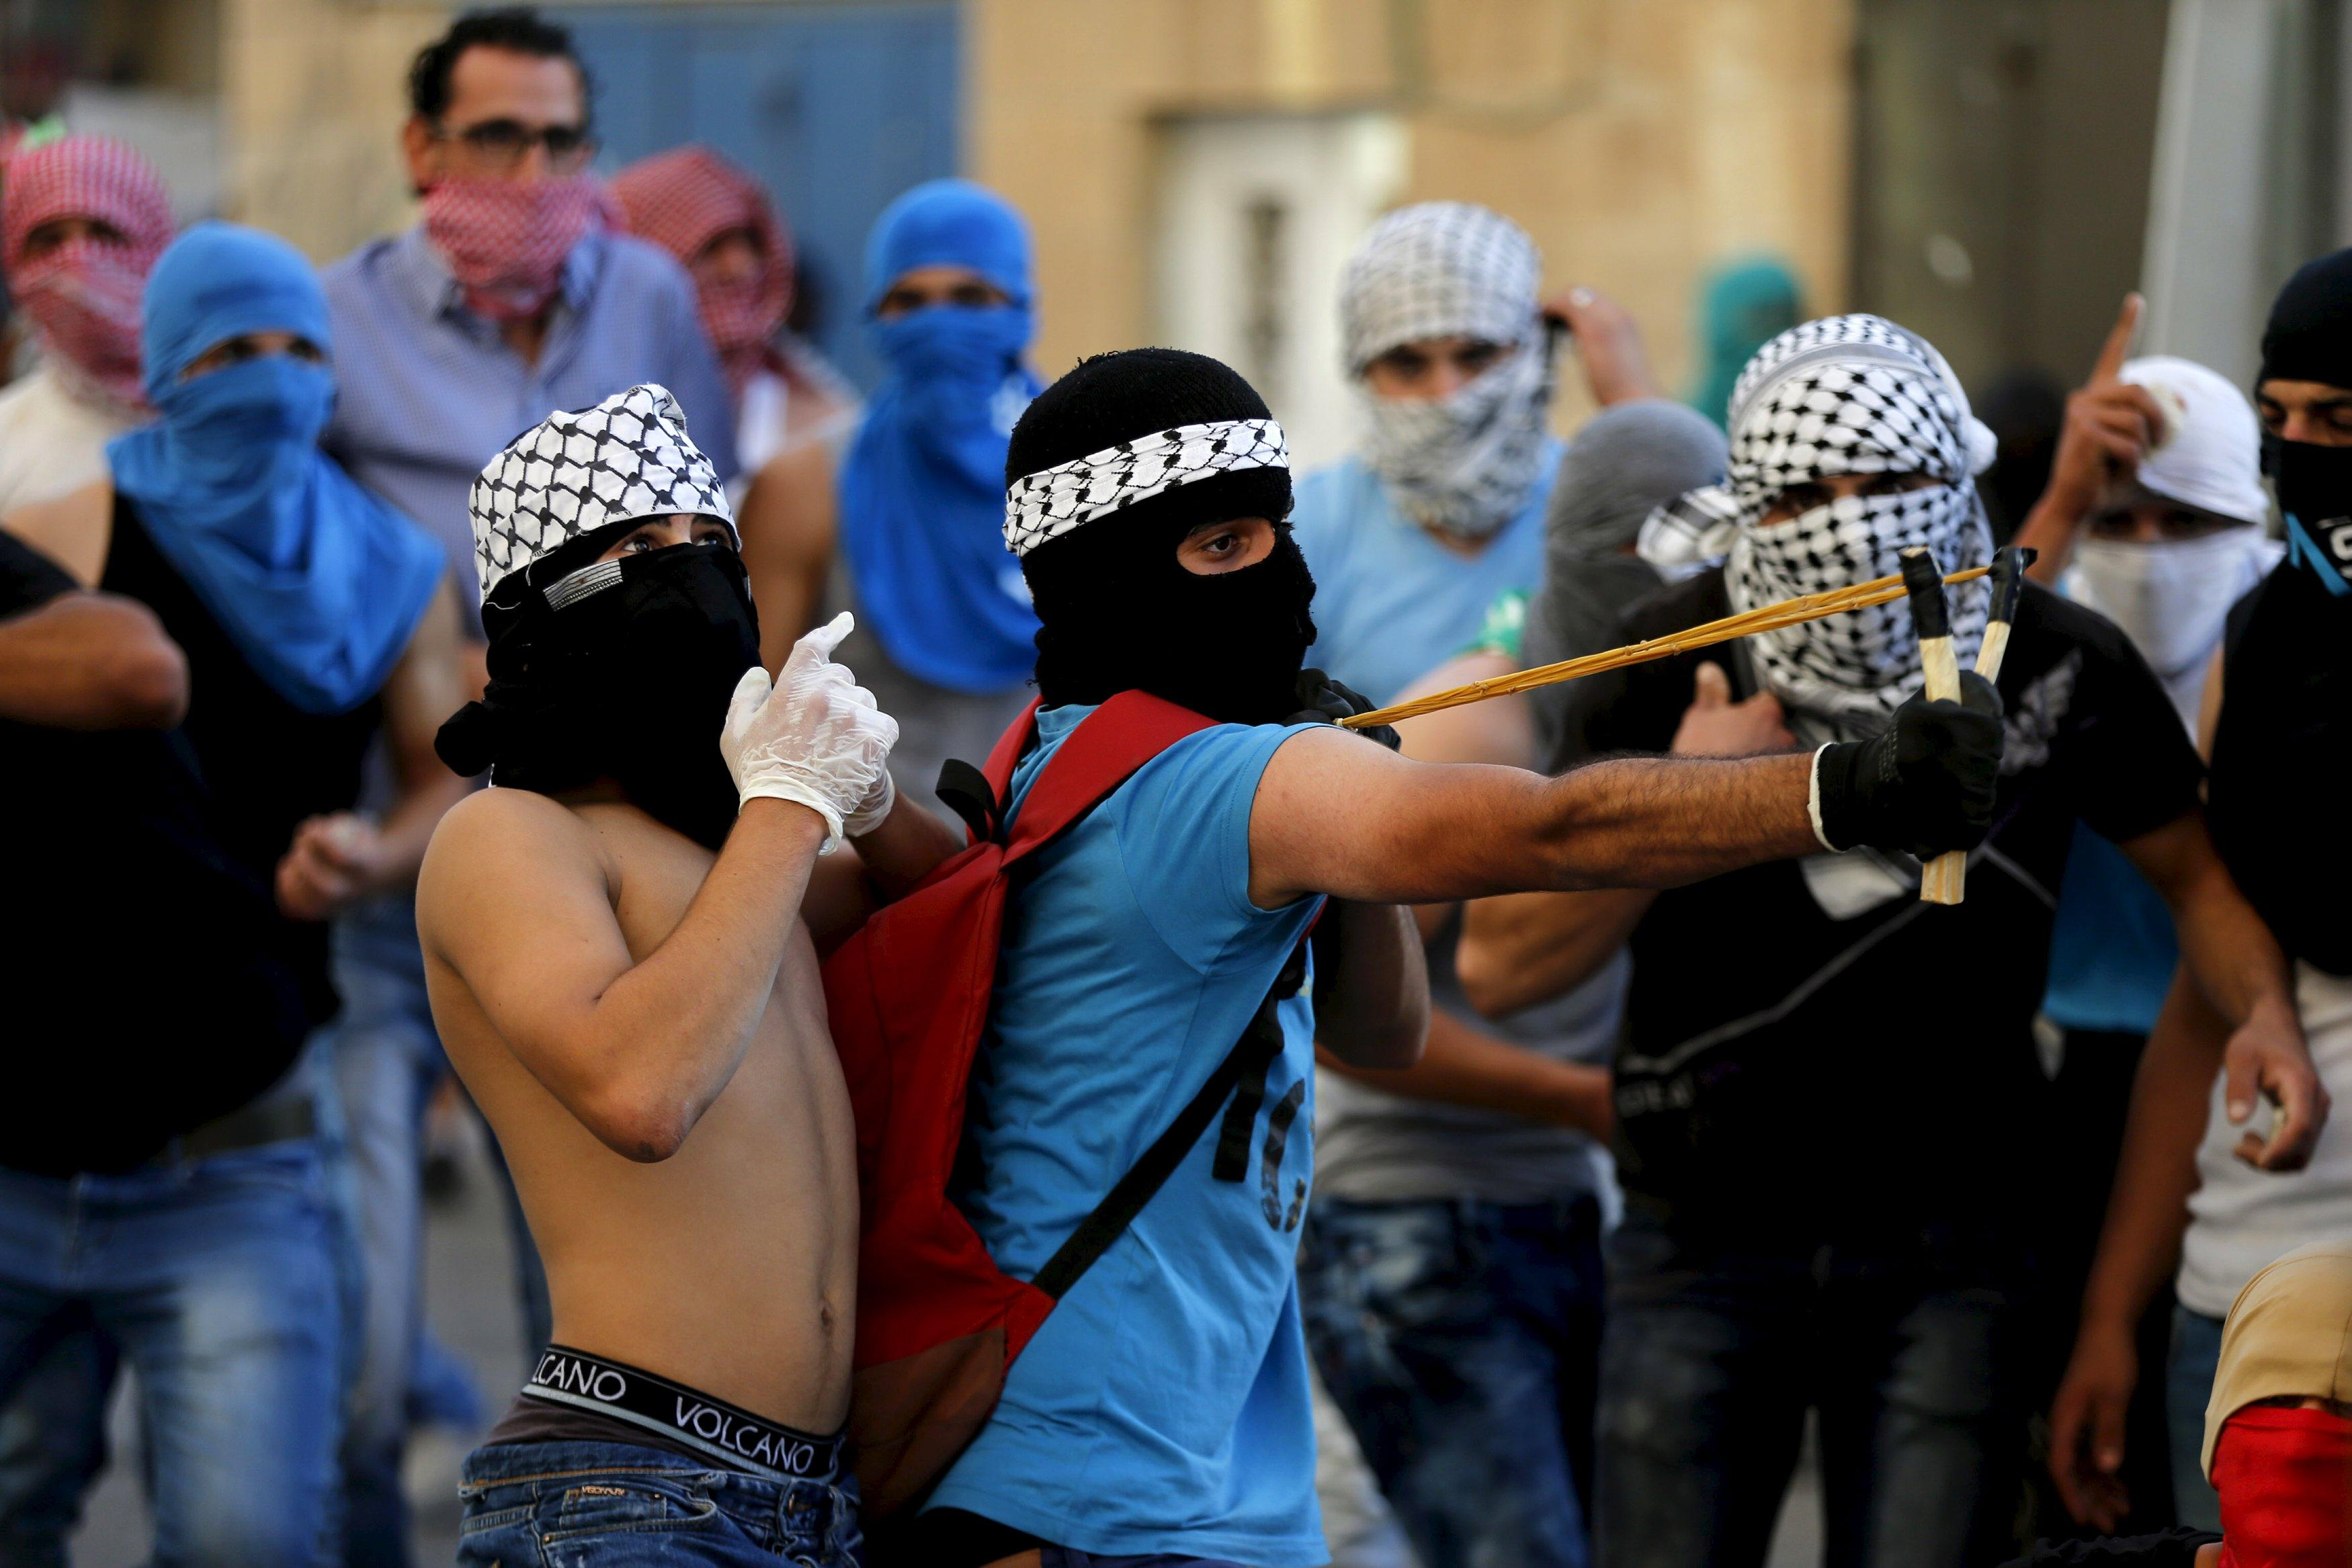 Palestinian protests amid deadly attacks against Israelis